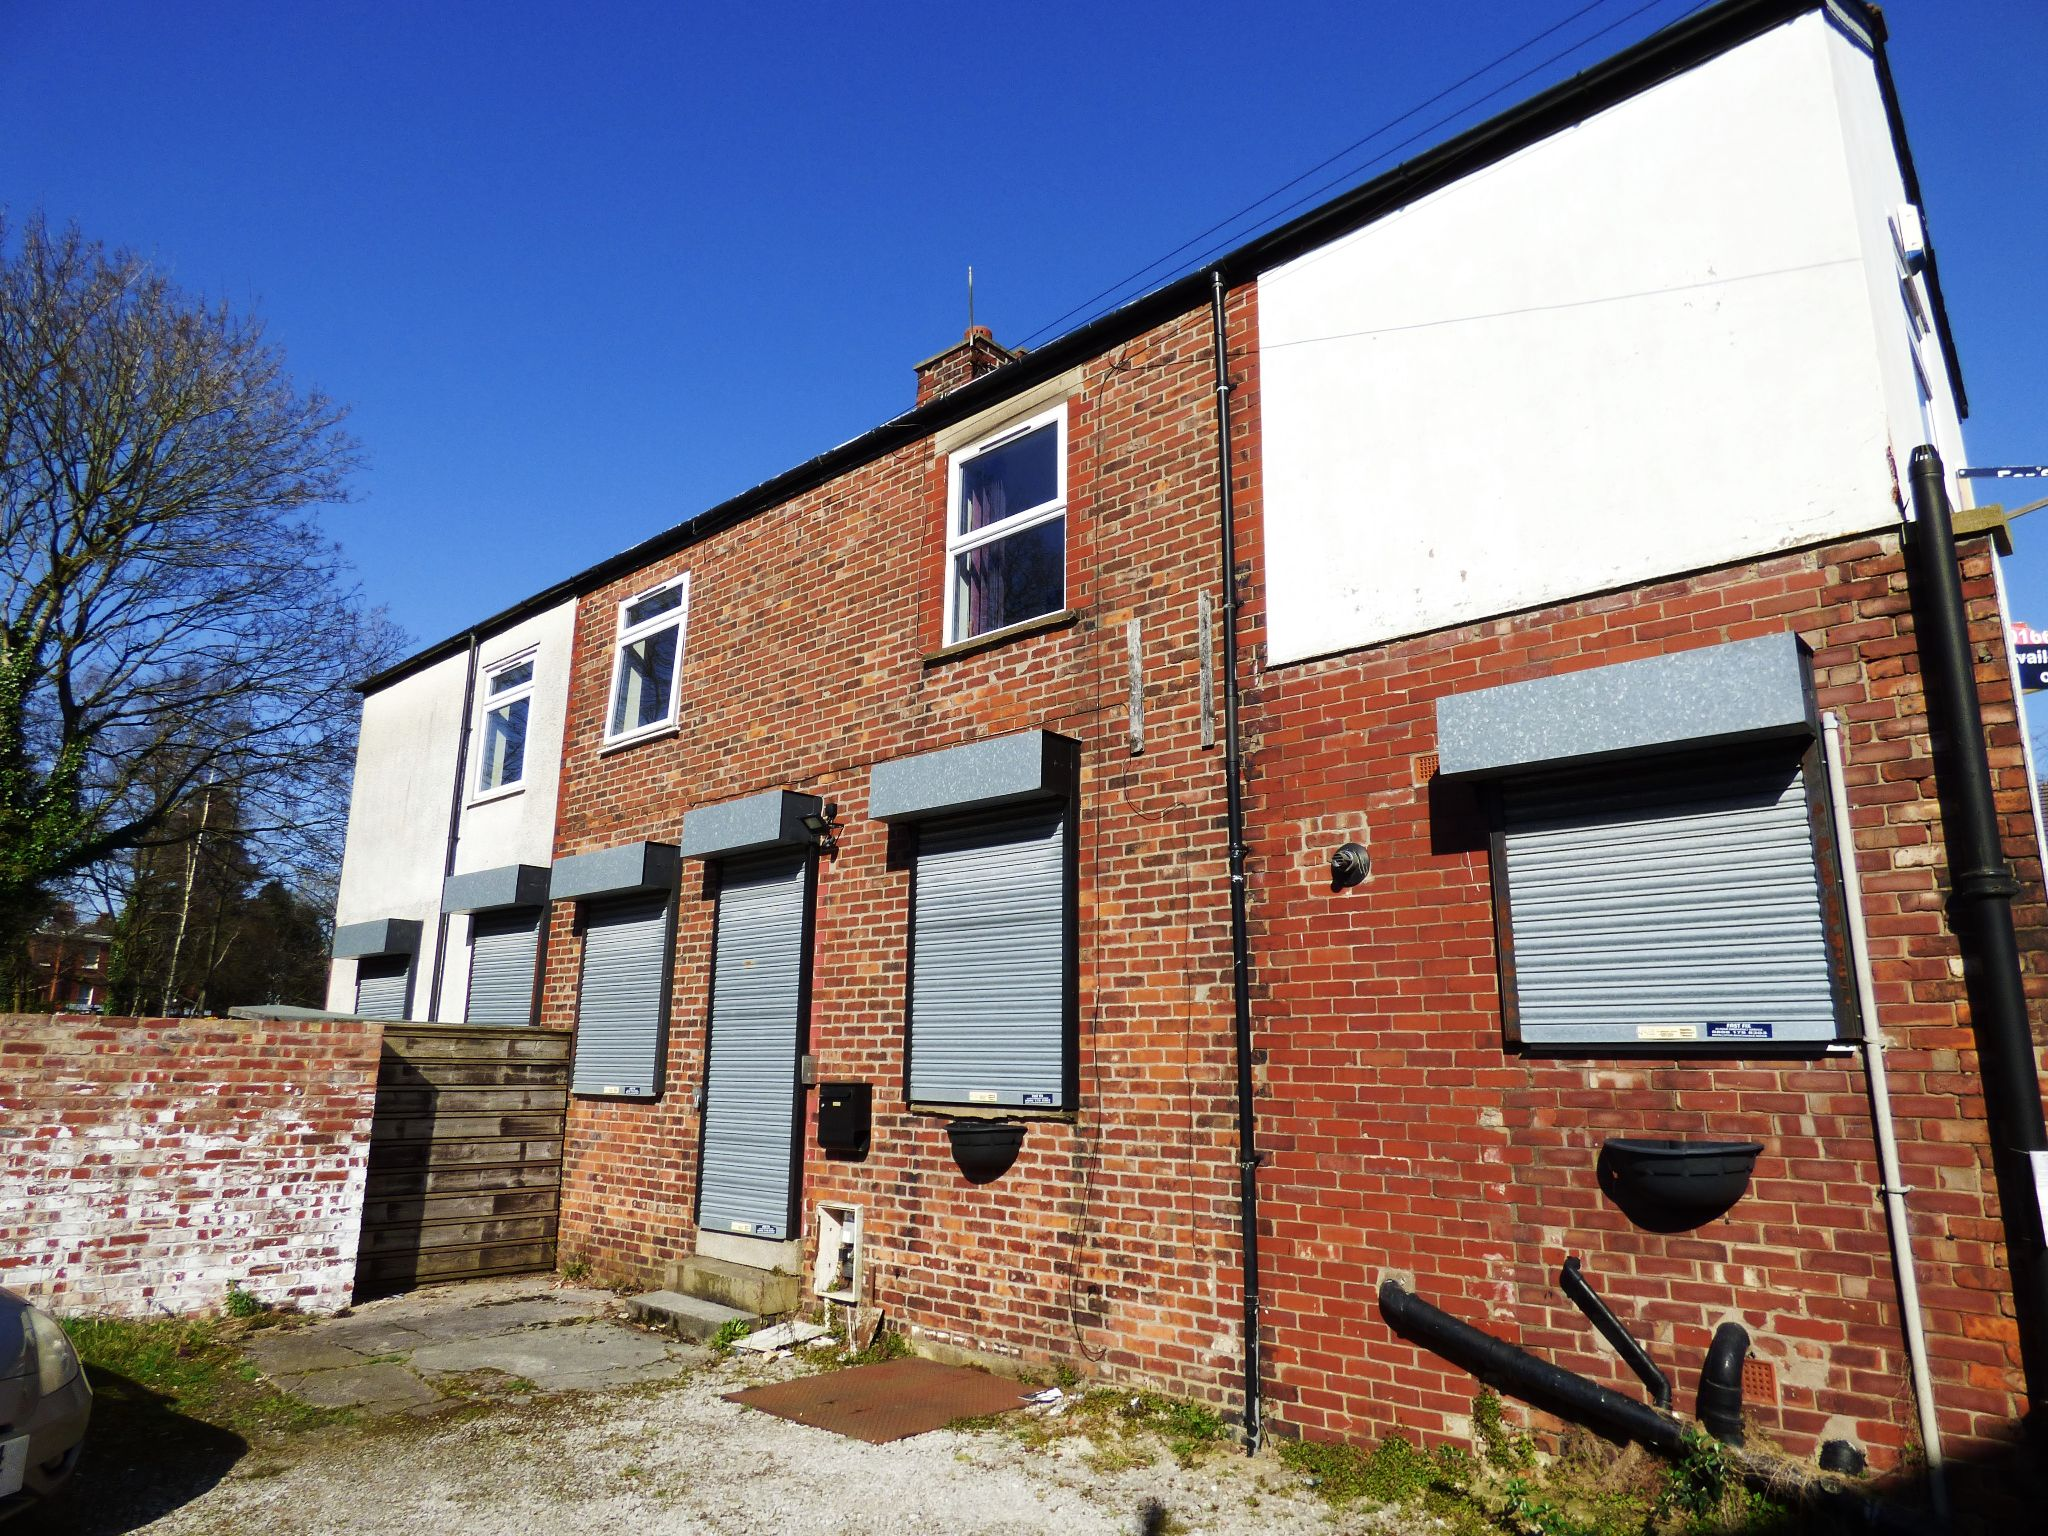 Commercial Property For Sale - Photograph 12